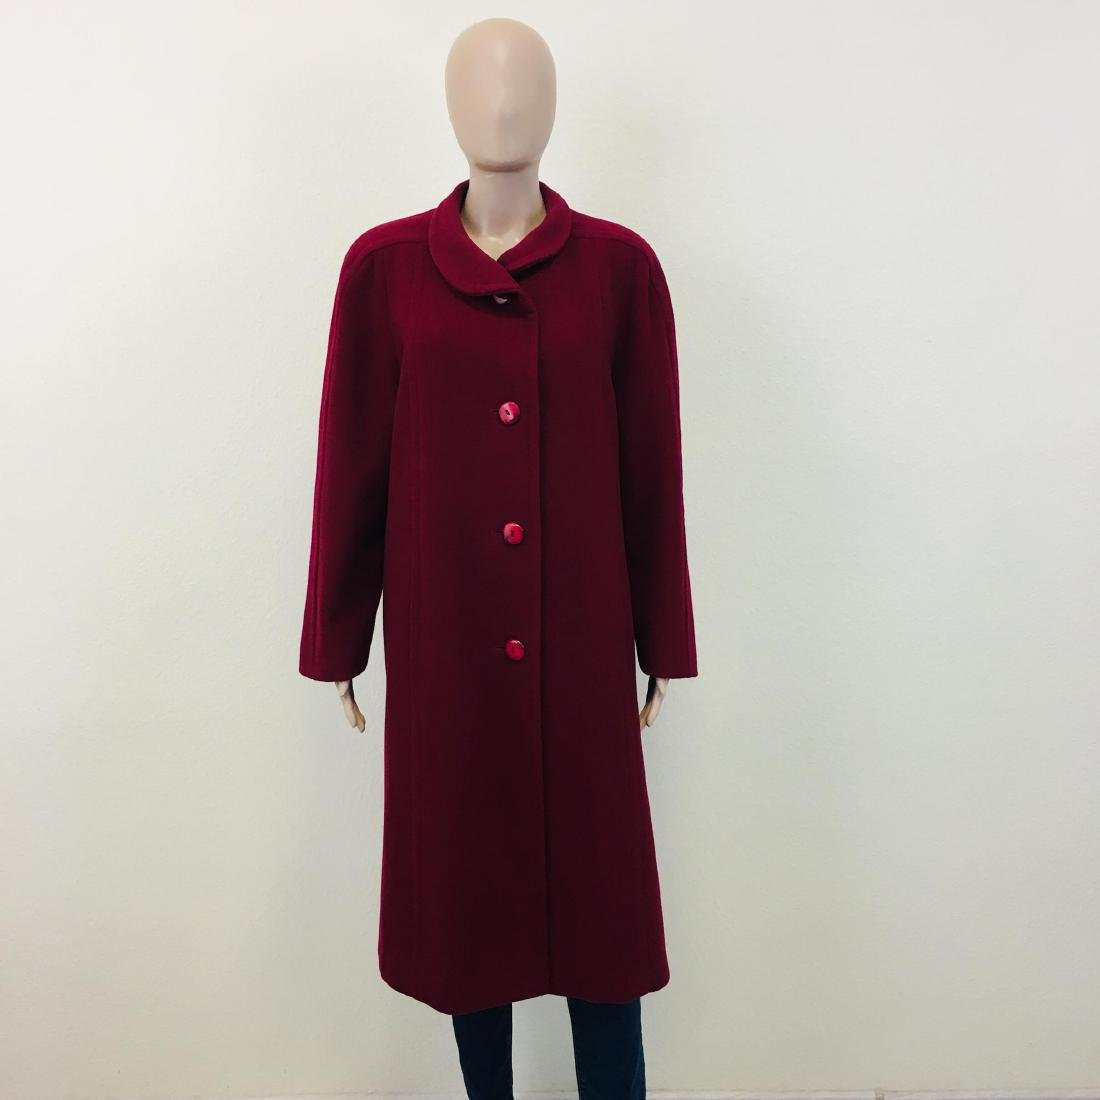 Women's Strowenz Designer Wool Blend Long Coat